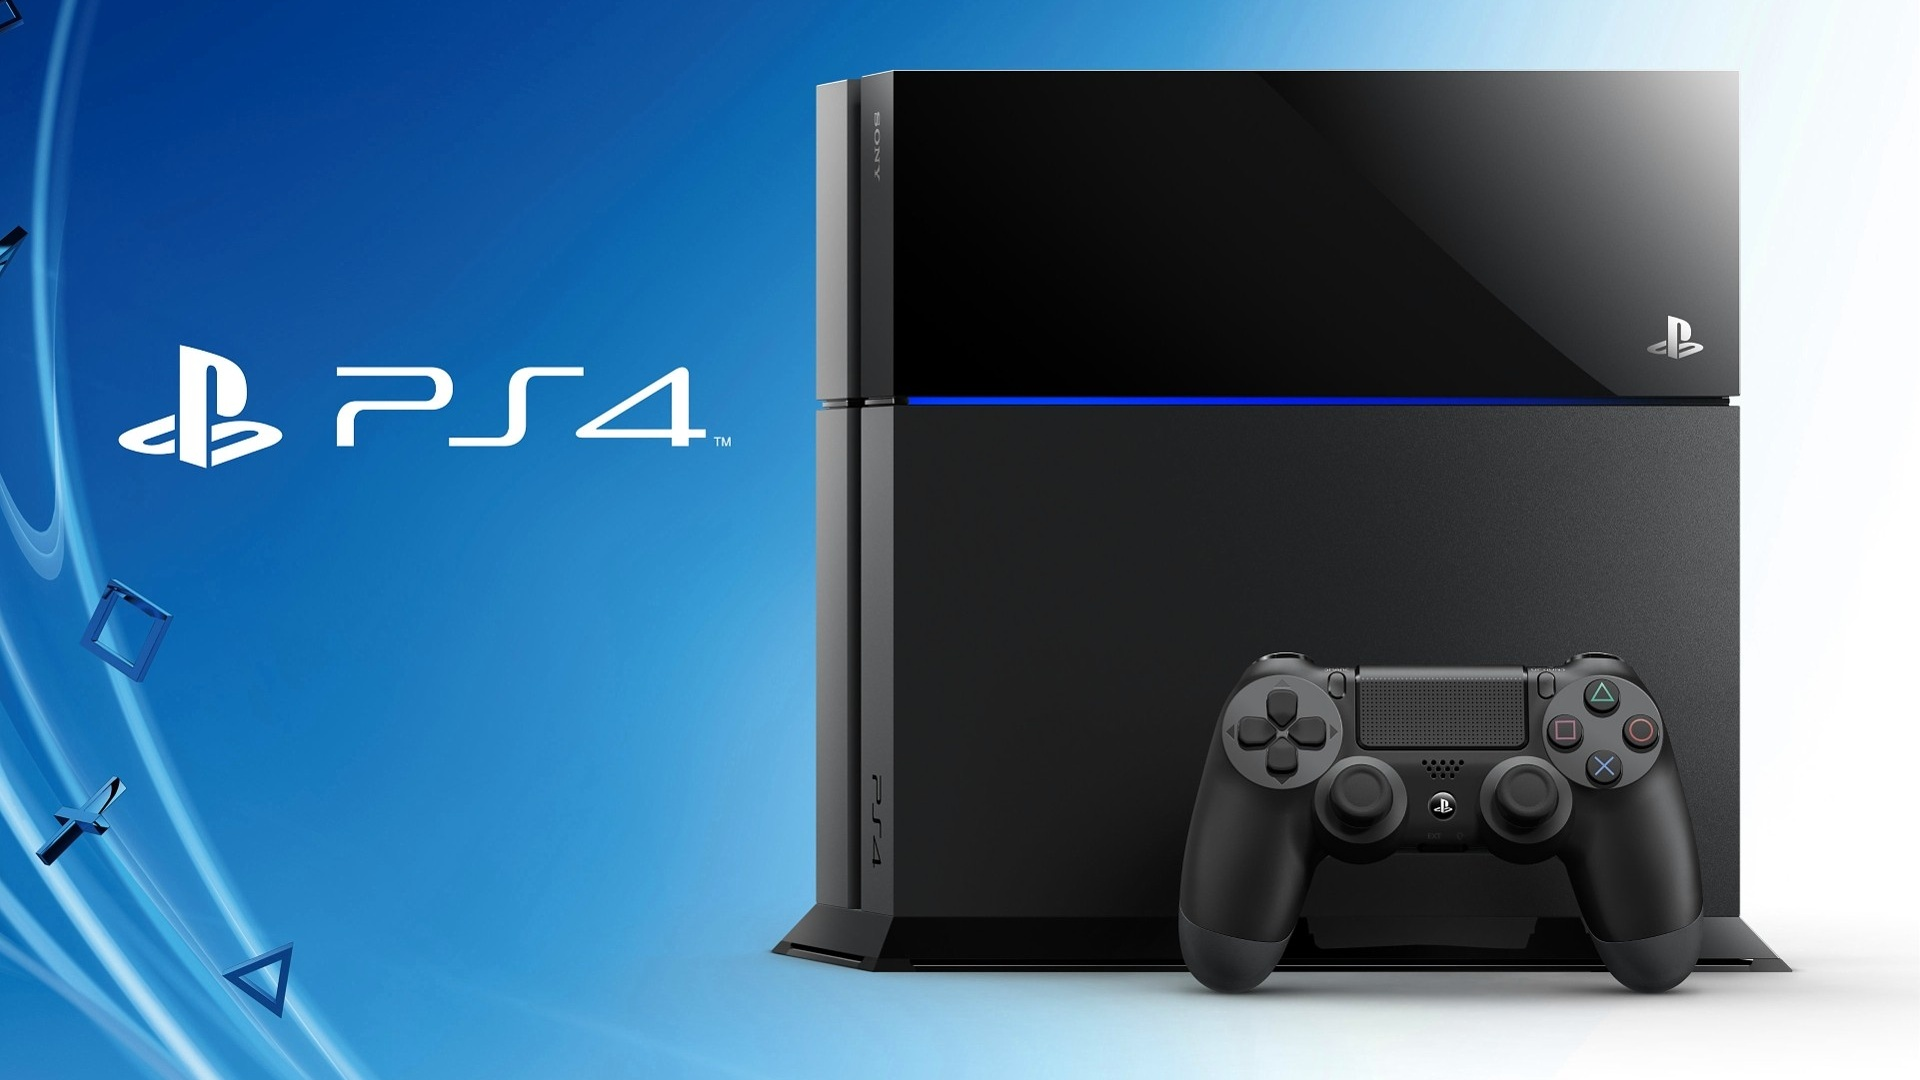 Playstation 4 black and white stock Is PlayStation 4 Neo Really 'The One'? black and white stock